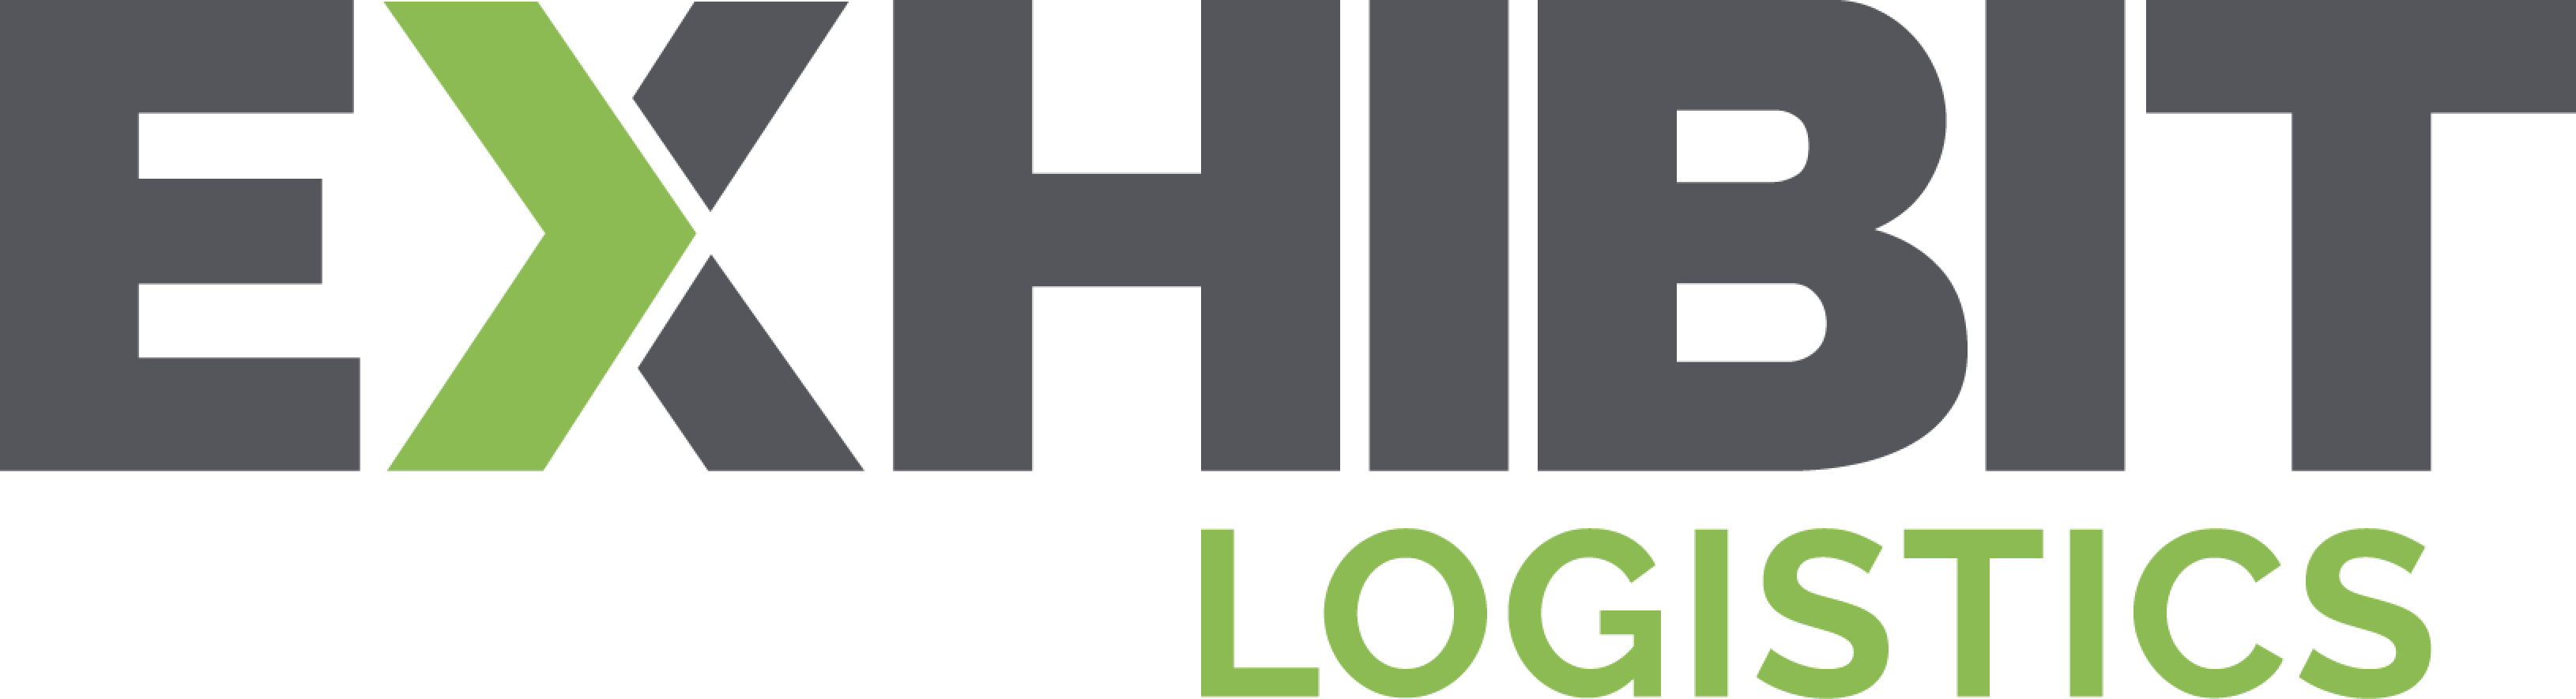 Exhibit Logistics & DeanHouston Logo